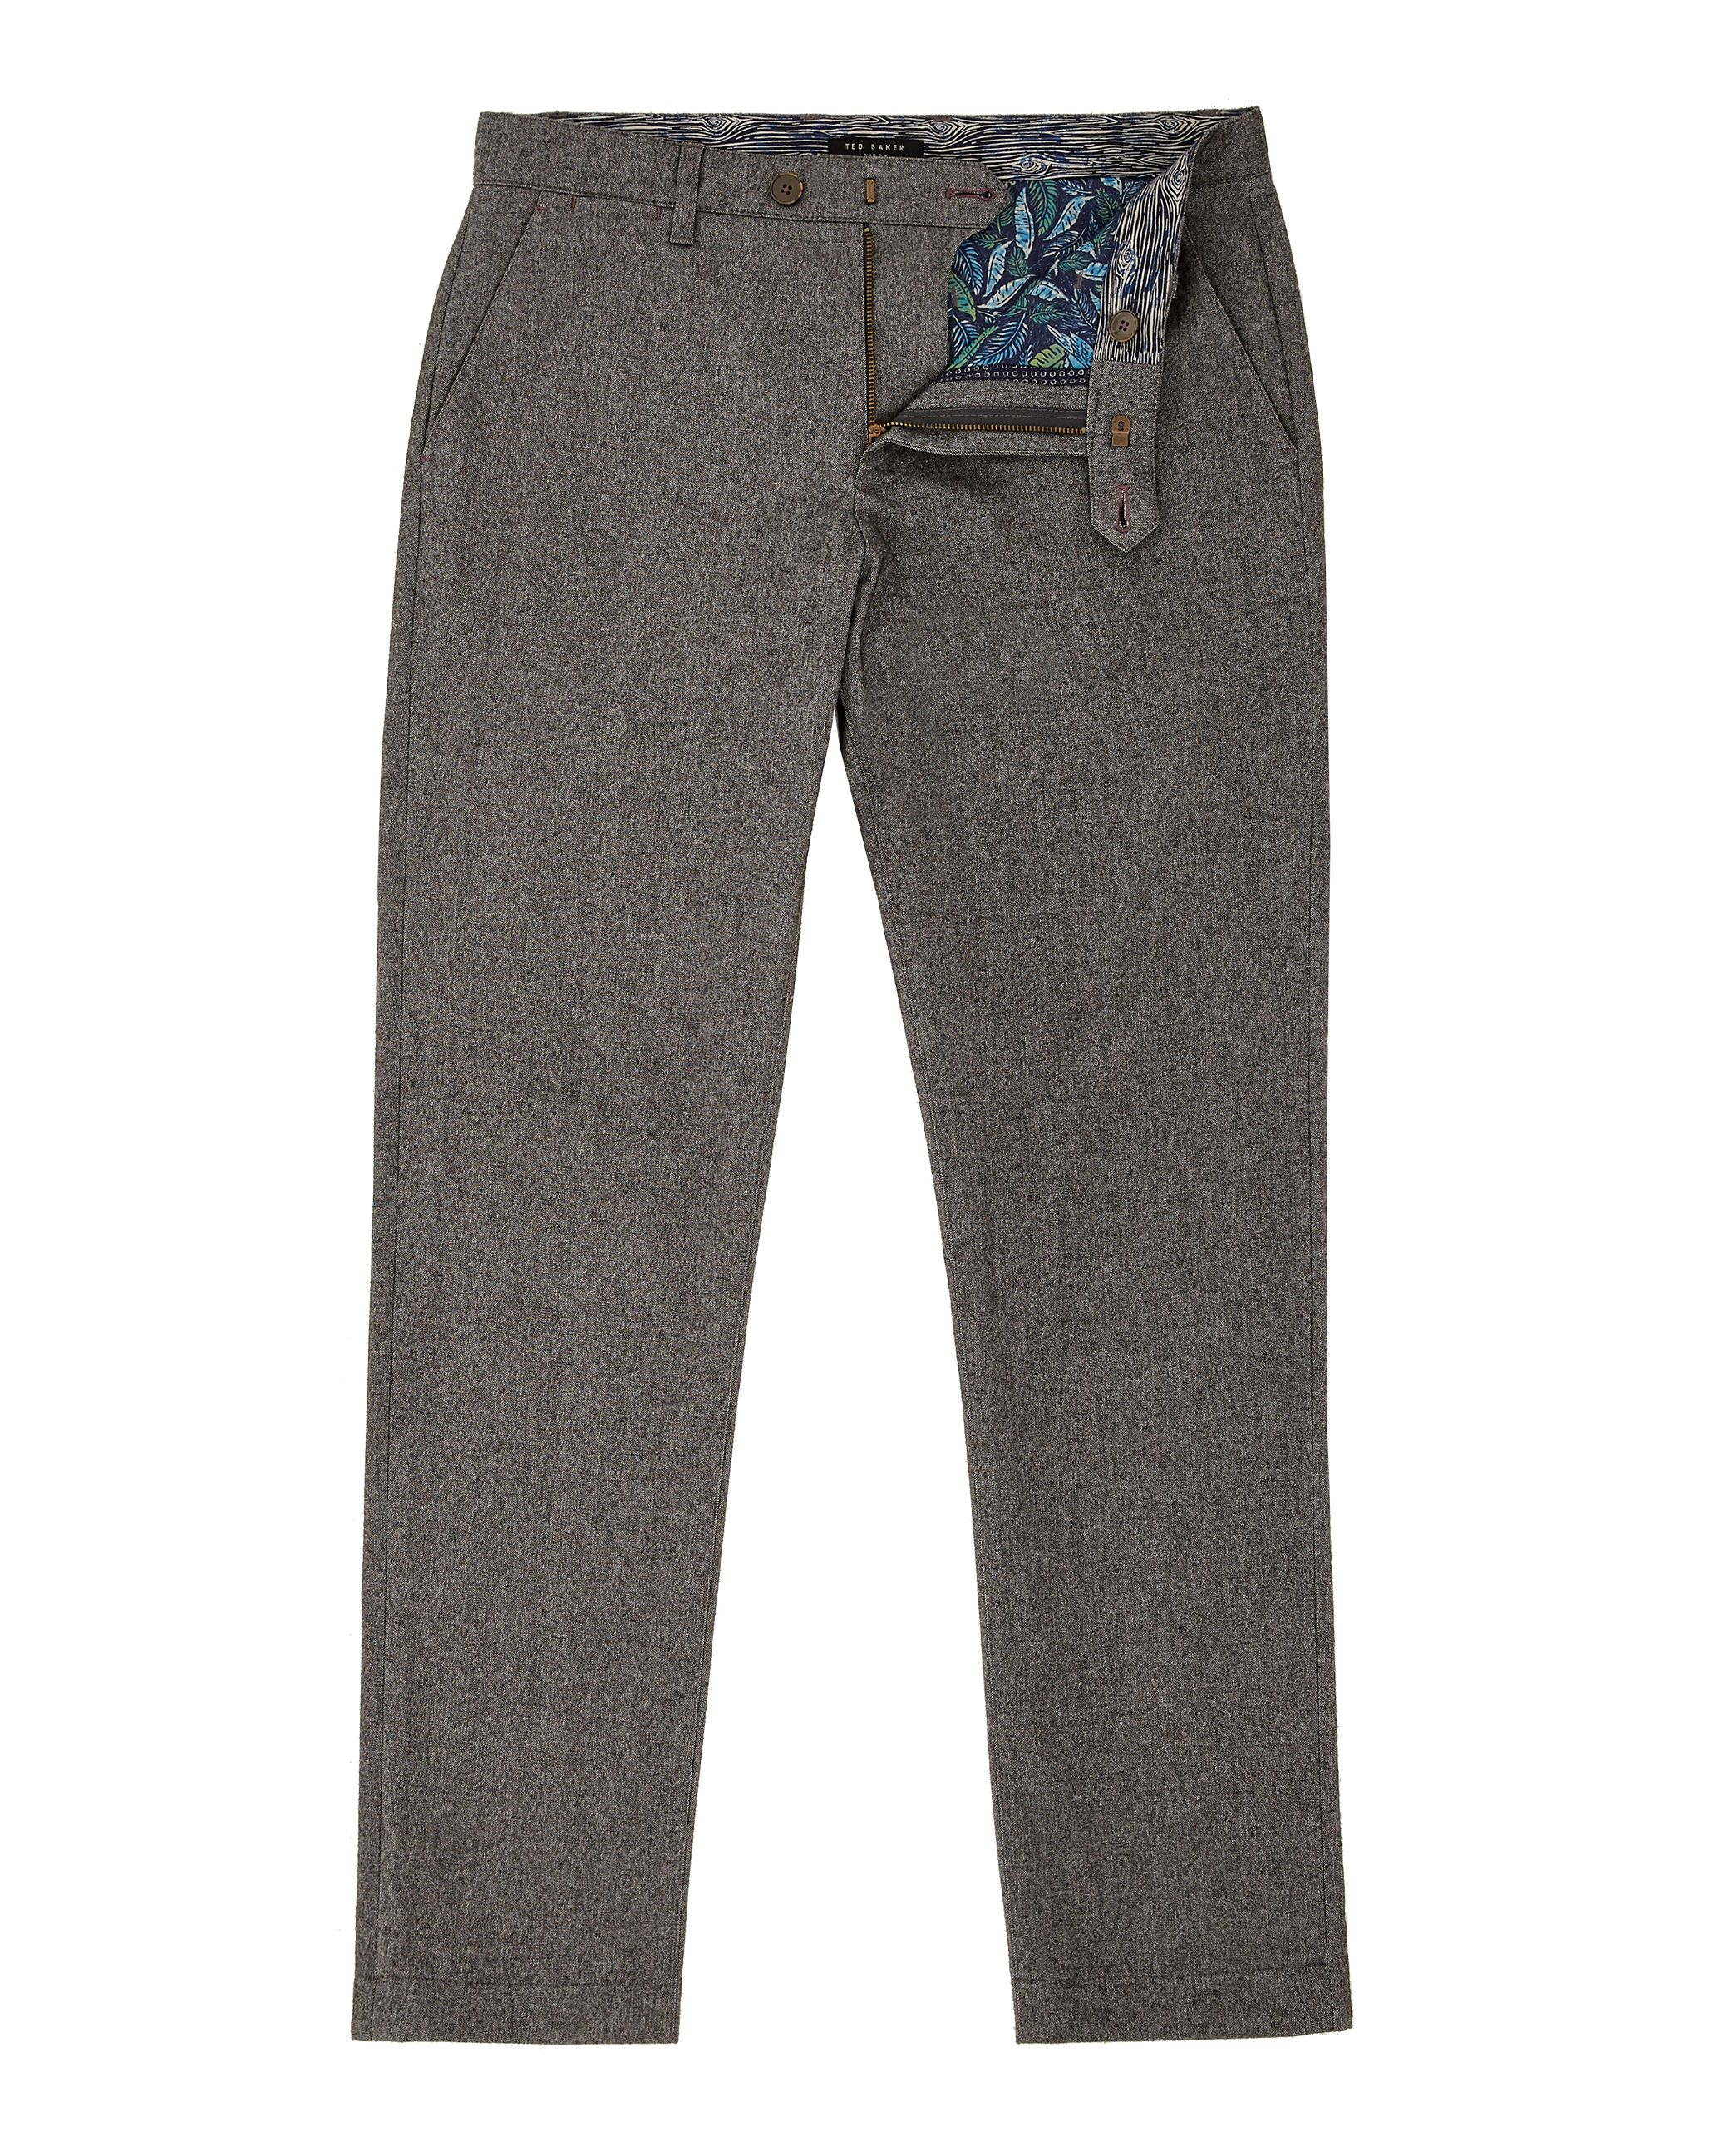 Mens Ted Baker Classy Classic Fit Cotton Trousers Charcoal